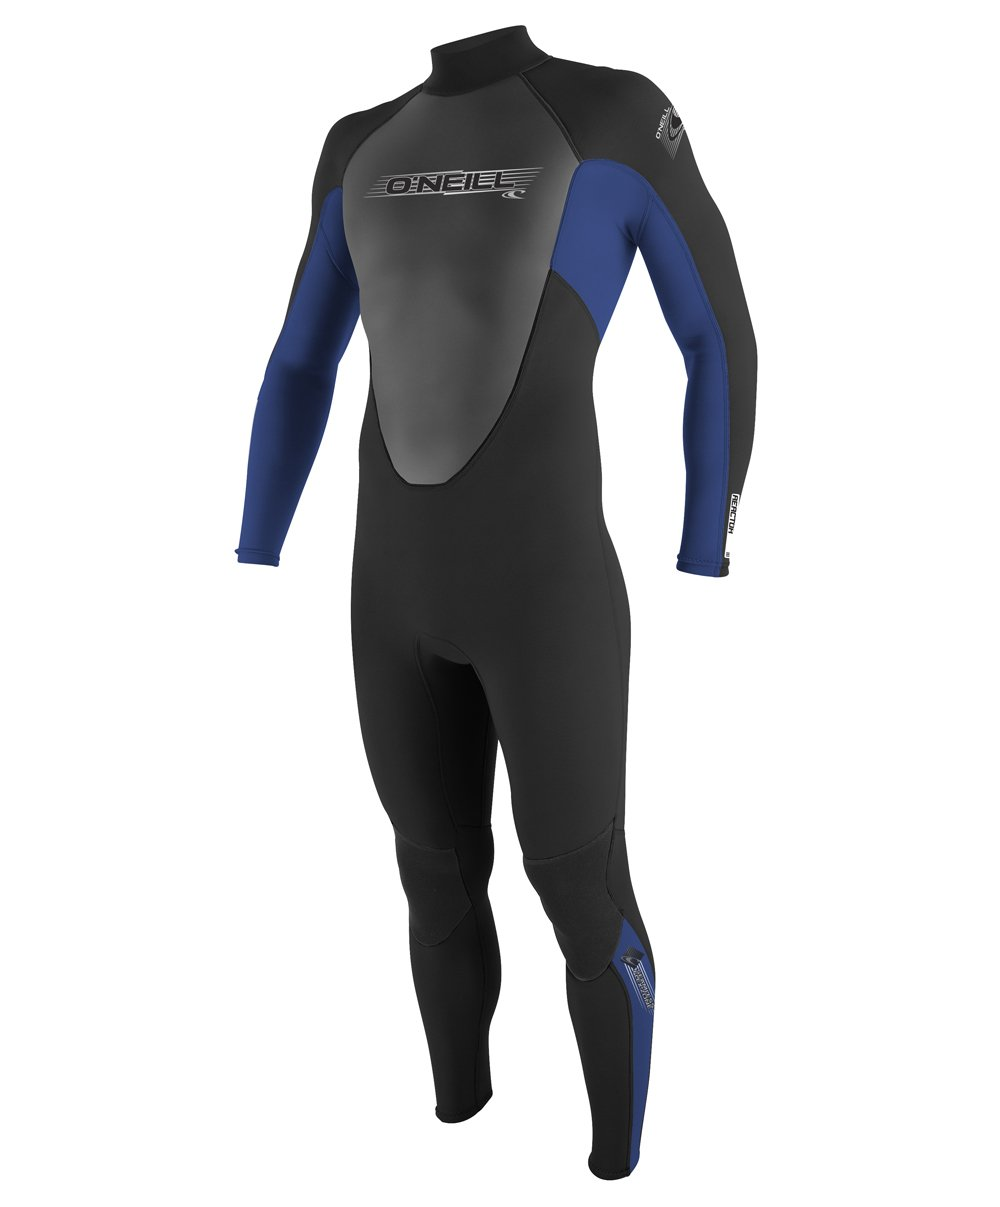 O'Neill Youth Reactor 3/2mm Back Zip Full Wetsuit, Black/Pacific/Black, 10 by O'Neill Wetsuits (Image #1)